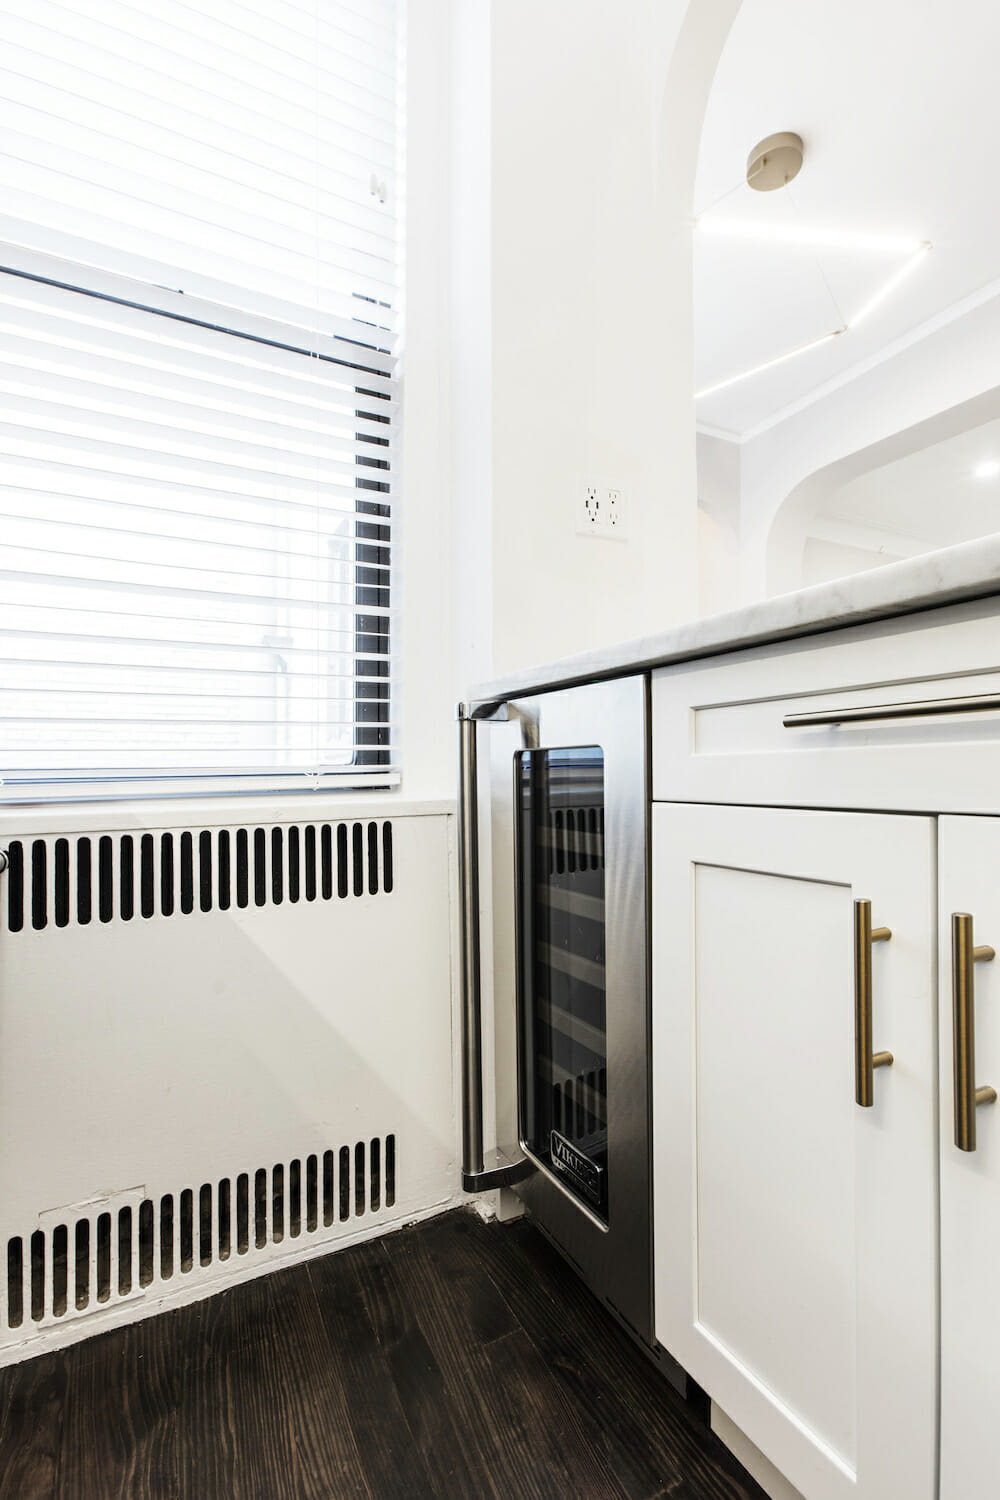 Image of white kitchen cabinets with a wine refrigerator